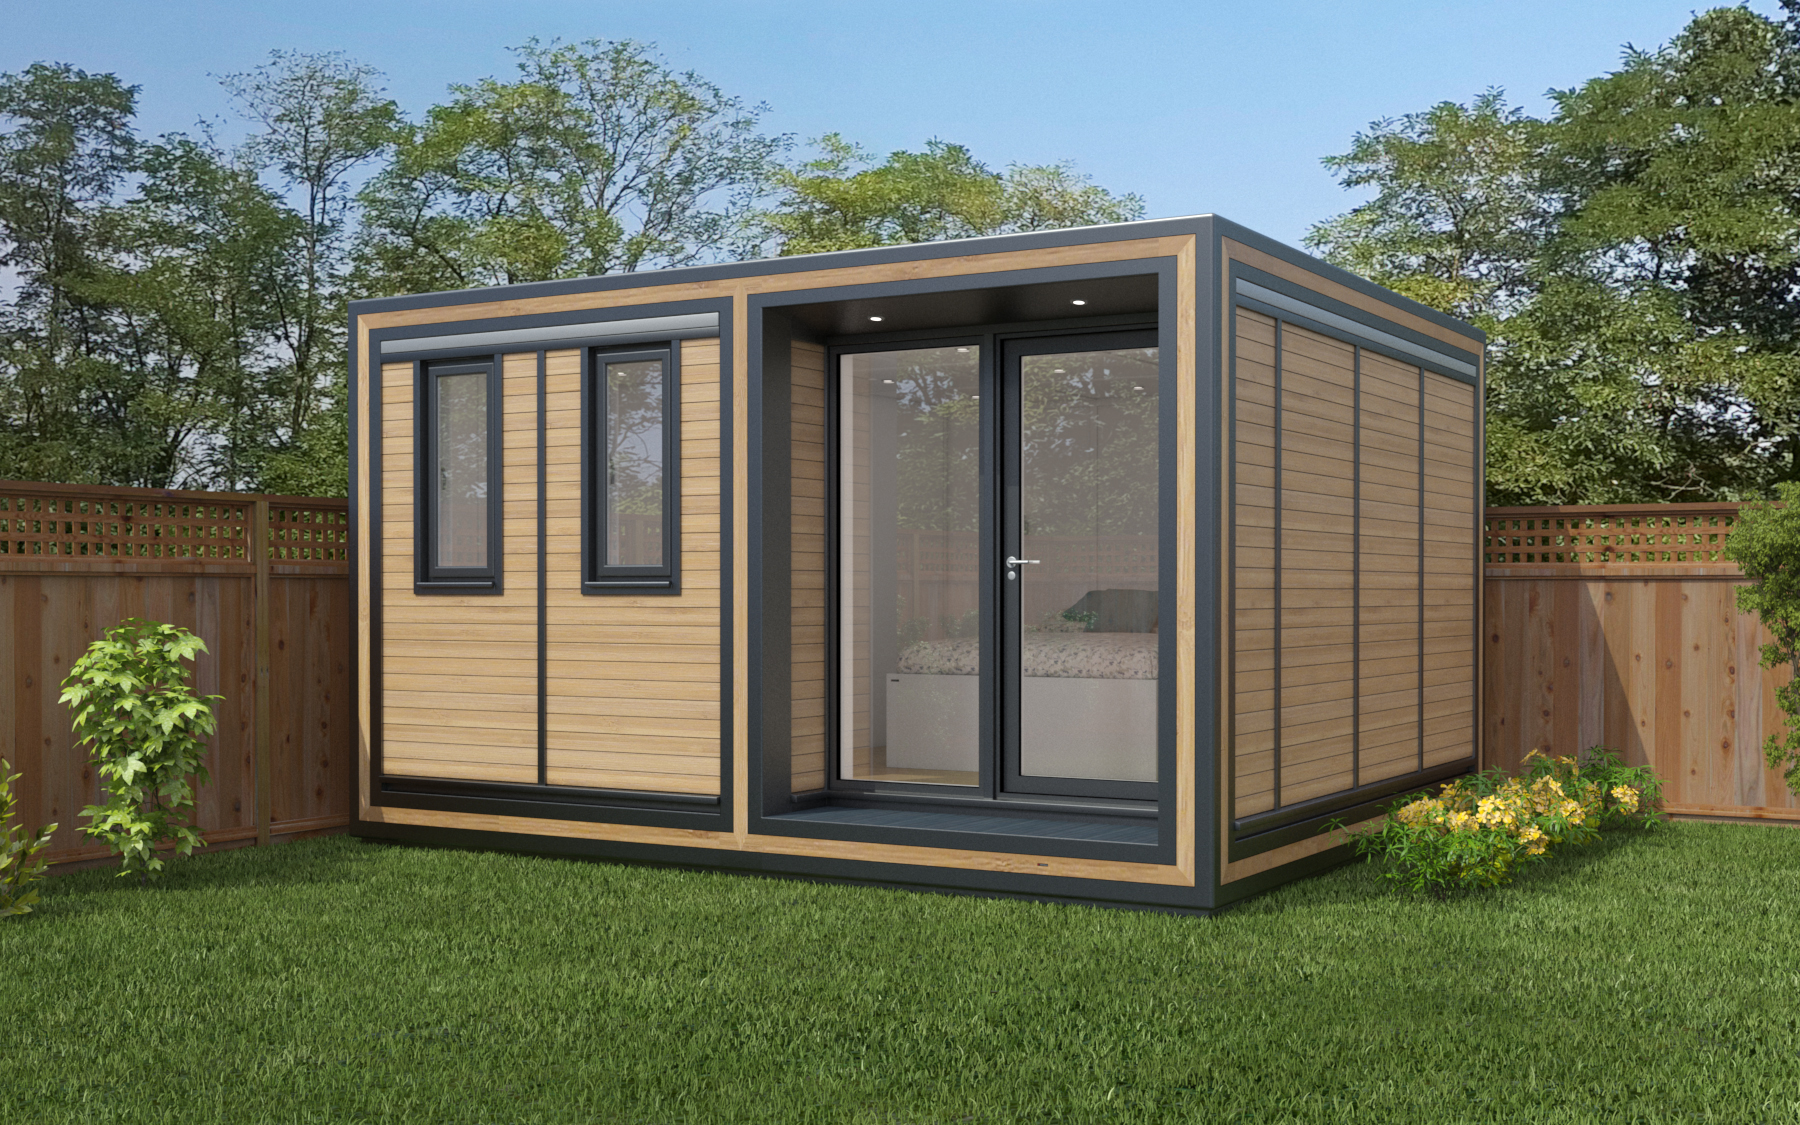 ZEDBOX 435  (3 x 3.5)  Internal Size: 4259 x 3791  External Size: 4279 x 4261  Bed Options: Single or Double  Kitchen Options: Micro or Premier  Wet Room Options: Yes  Portico: Yes  Price:  £26,000    Optional Extras    Request Zedbox Catalogue